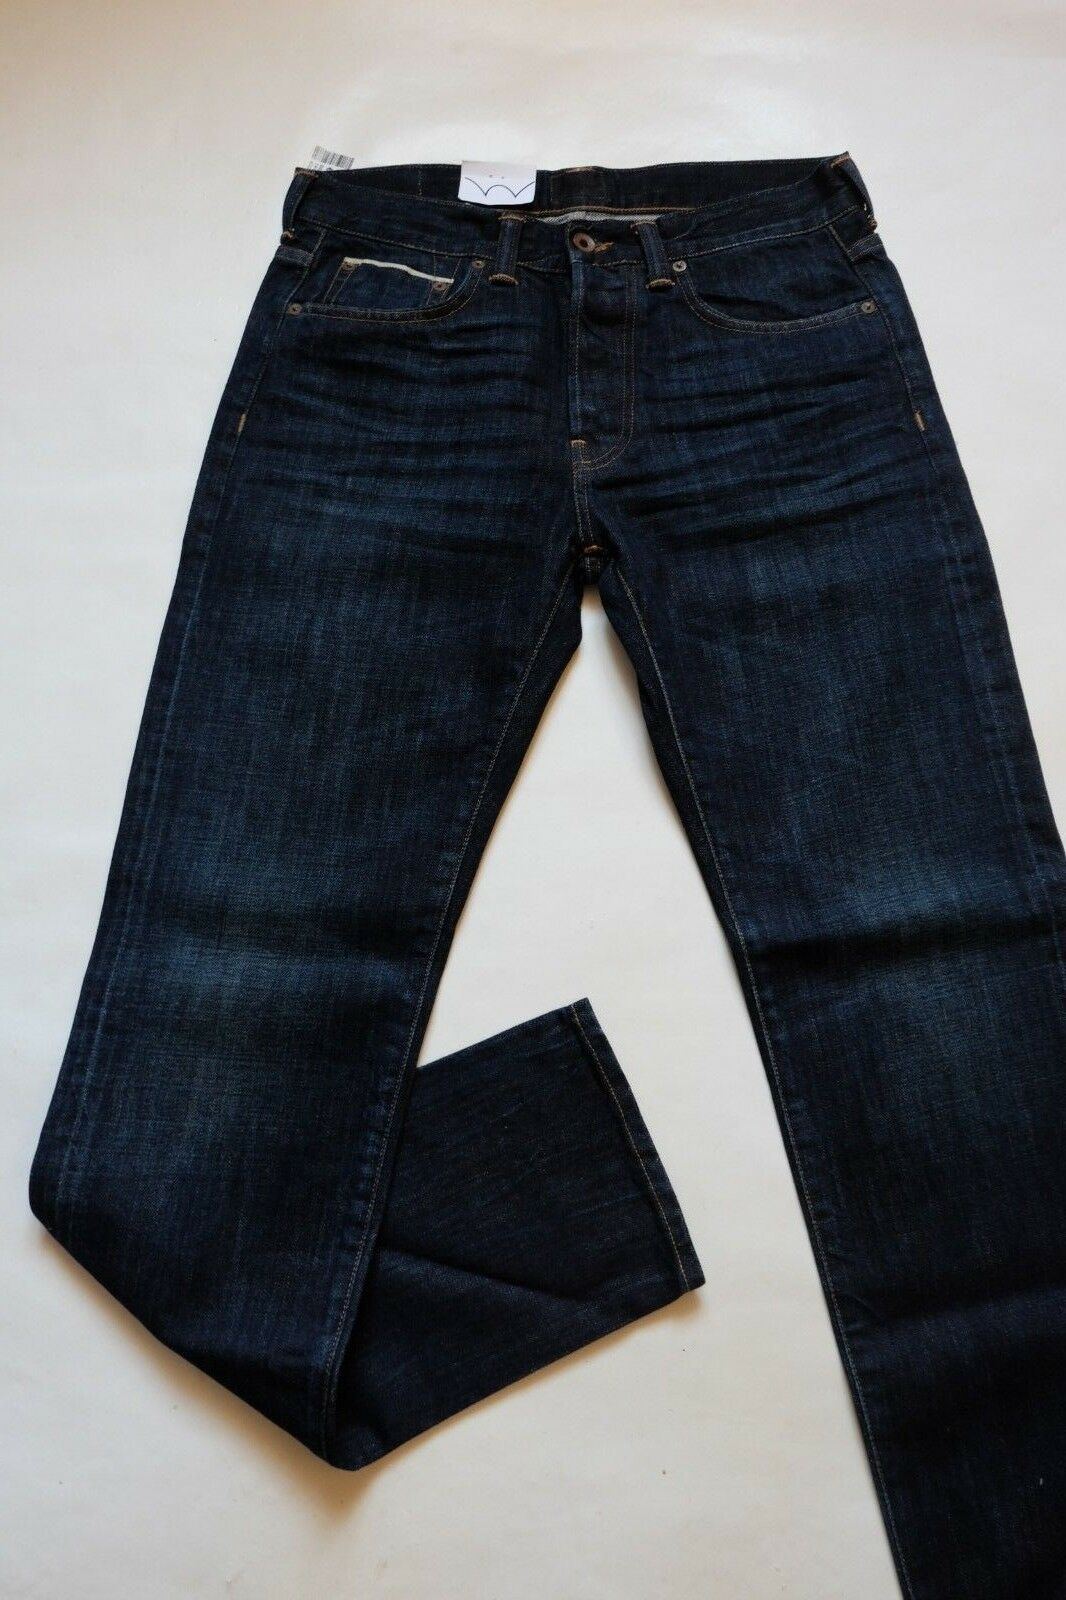 JEANS EDWIN  ED 80 X WHISTLES (white listed- burner wash)  W34  L32 VAL